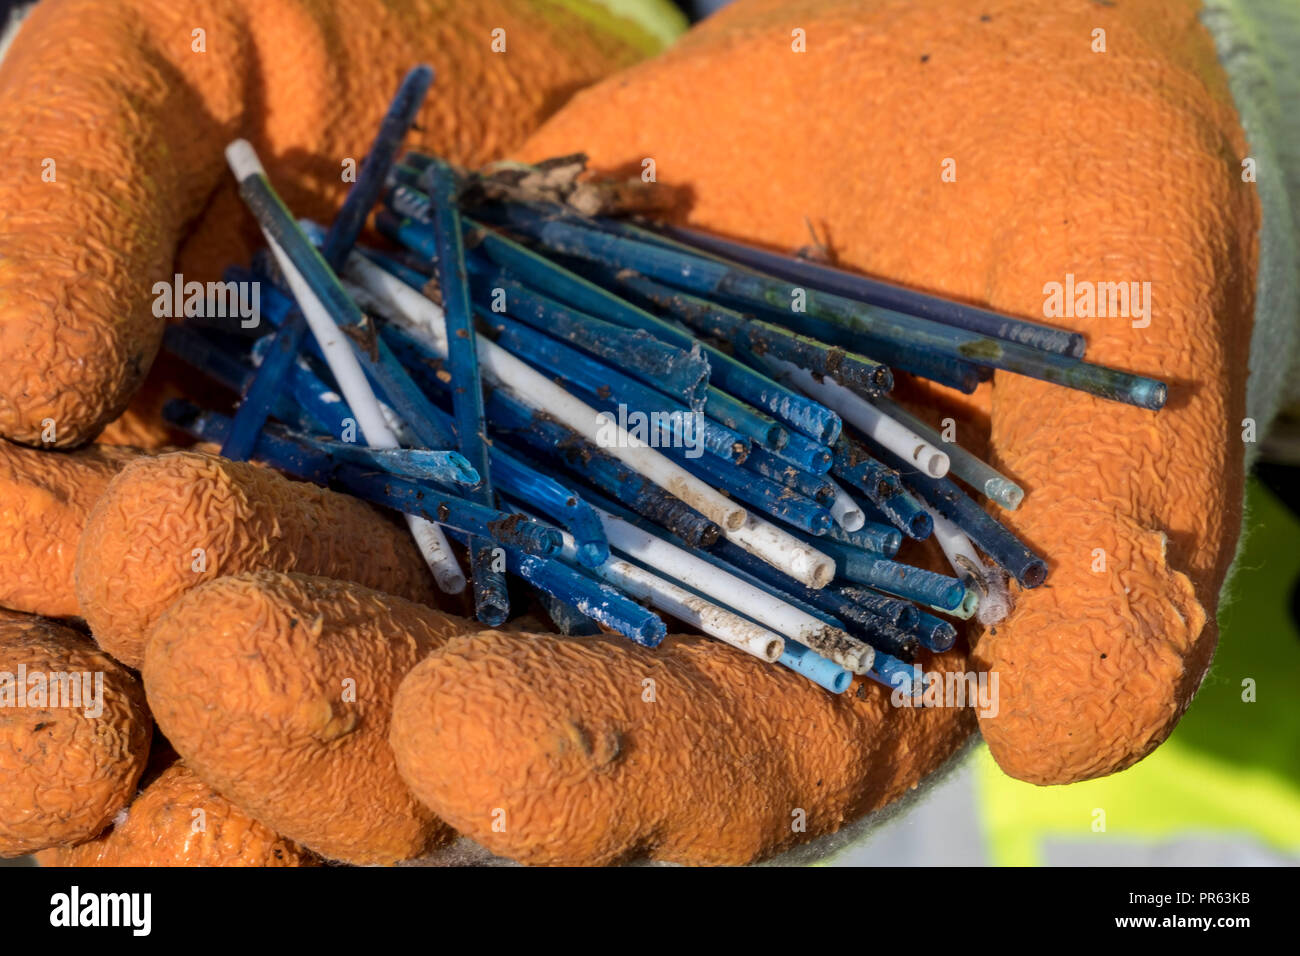 plastic cotton buds removed from River Clyde - Stock Image